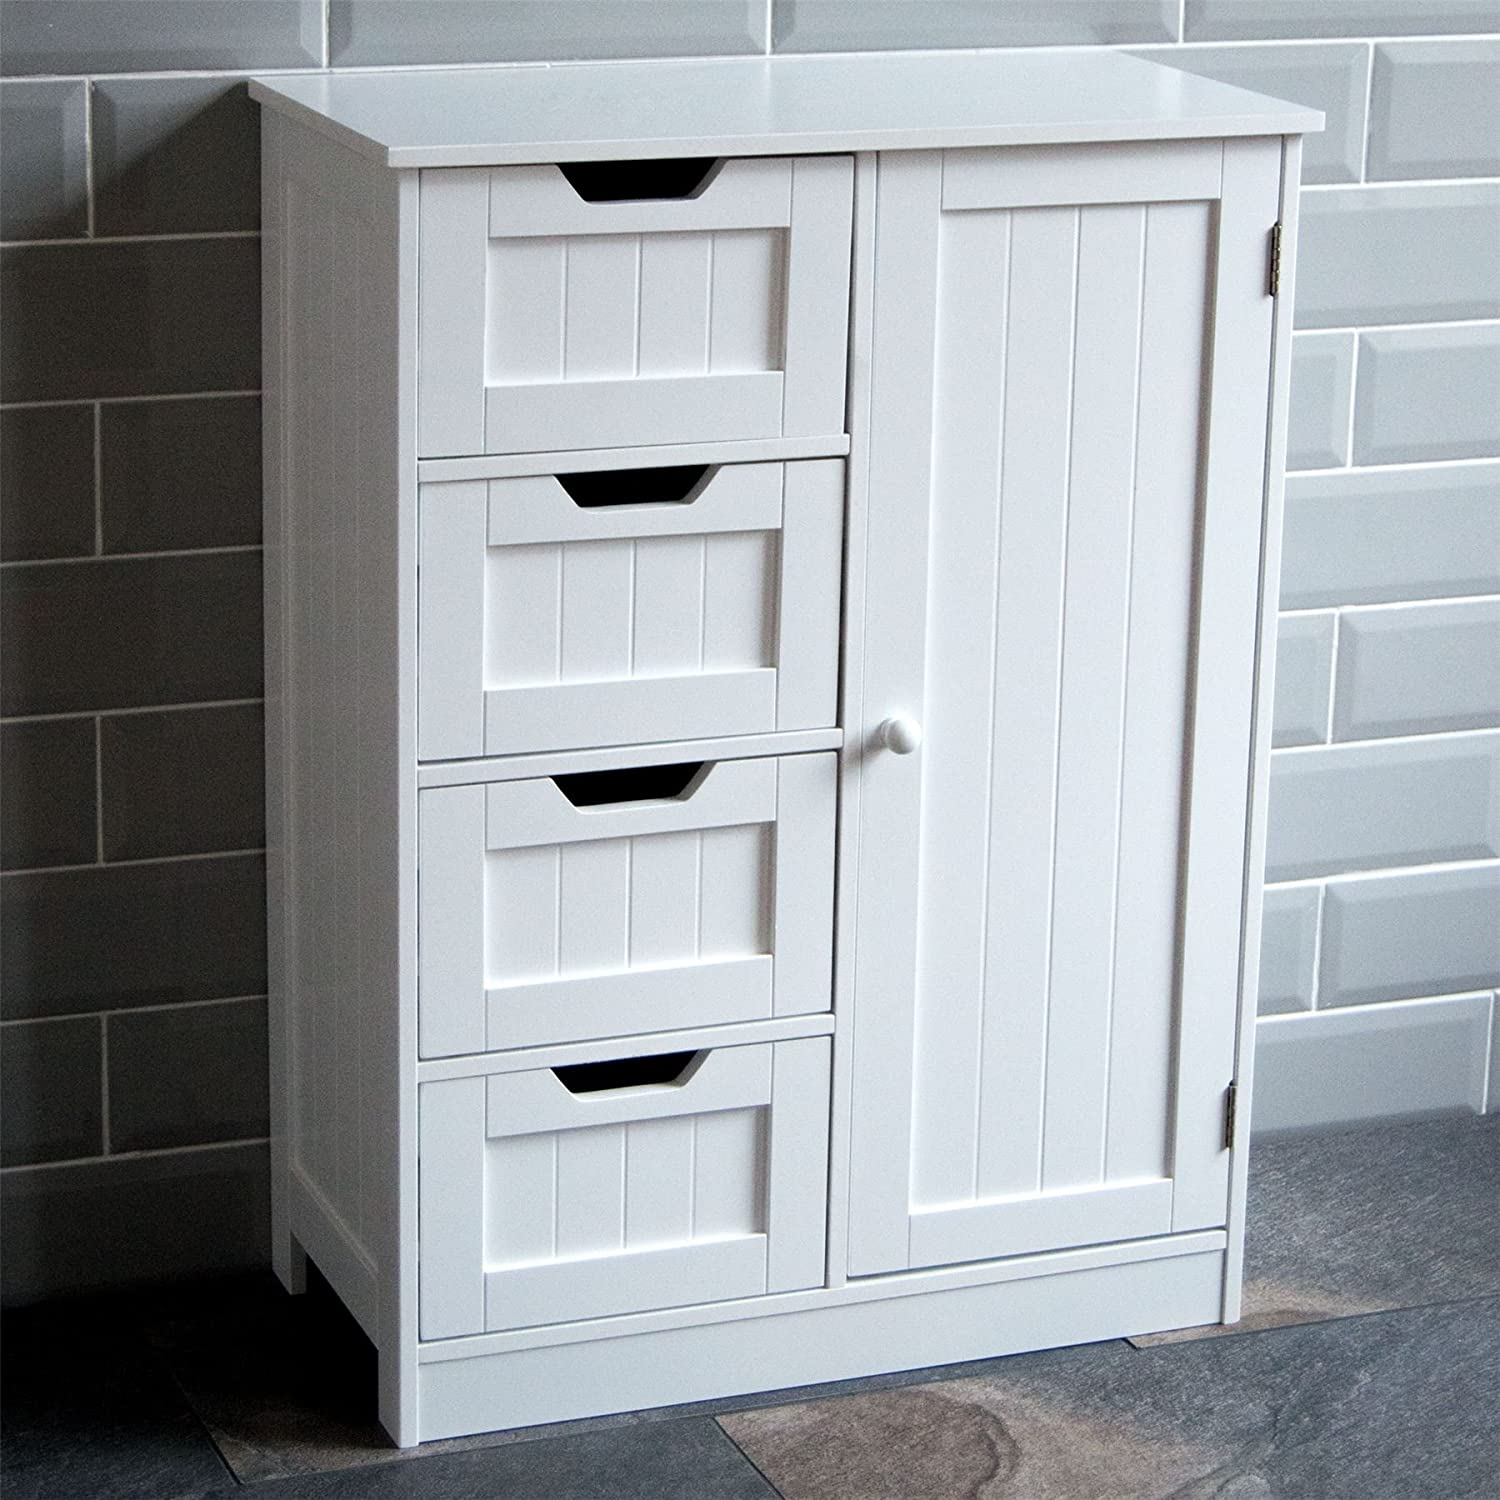 Bathroom storage units free standing - Home Discount Bathroom Cupboard 4 Drawer 1 Door Floor Standing Cabinet Unit Storage Wood White Amazon Co Uk Kitchen Home